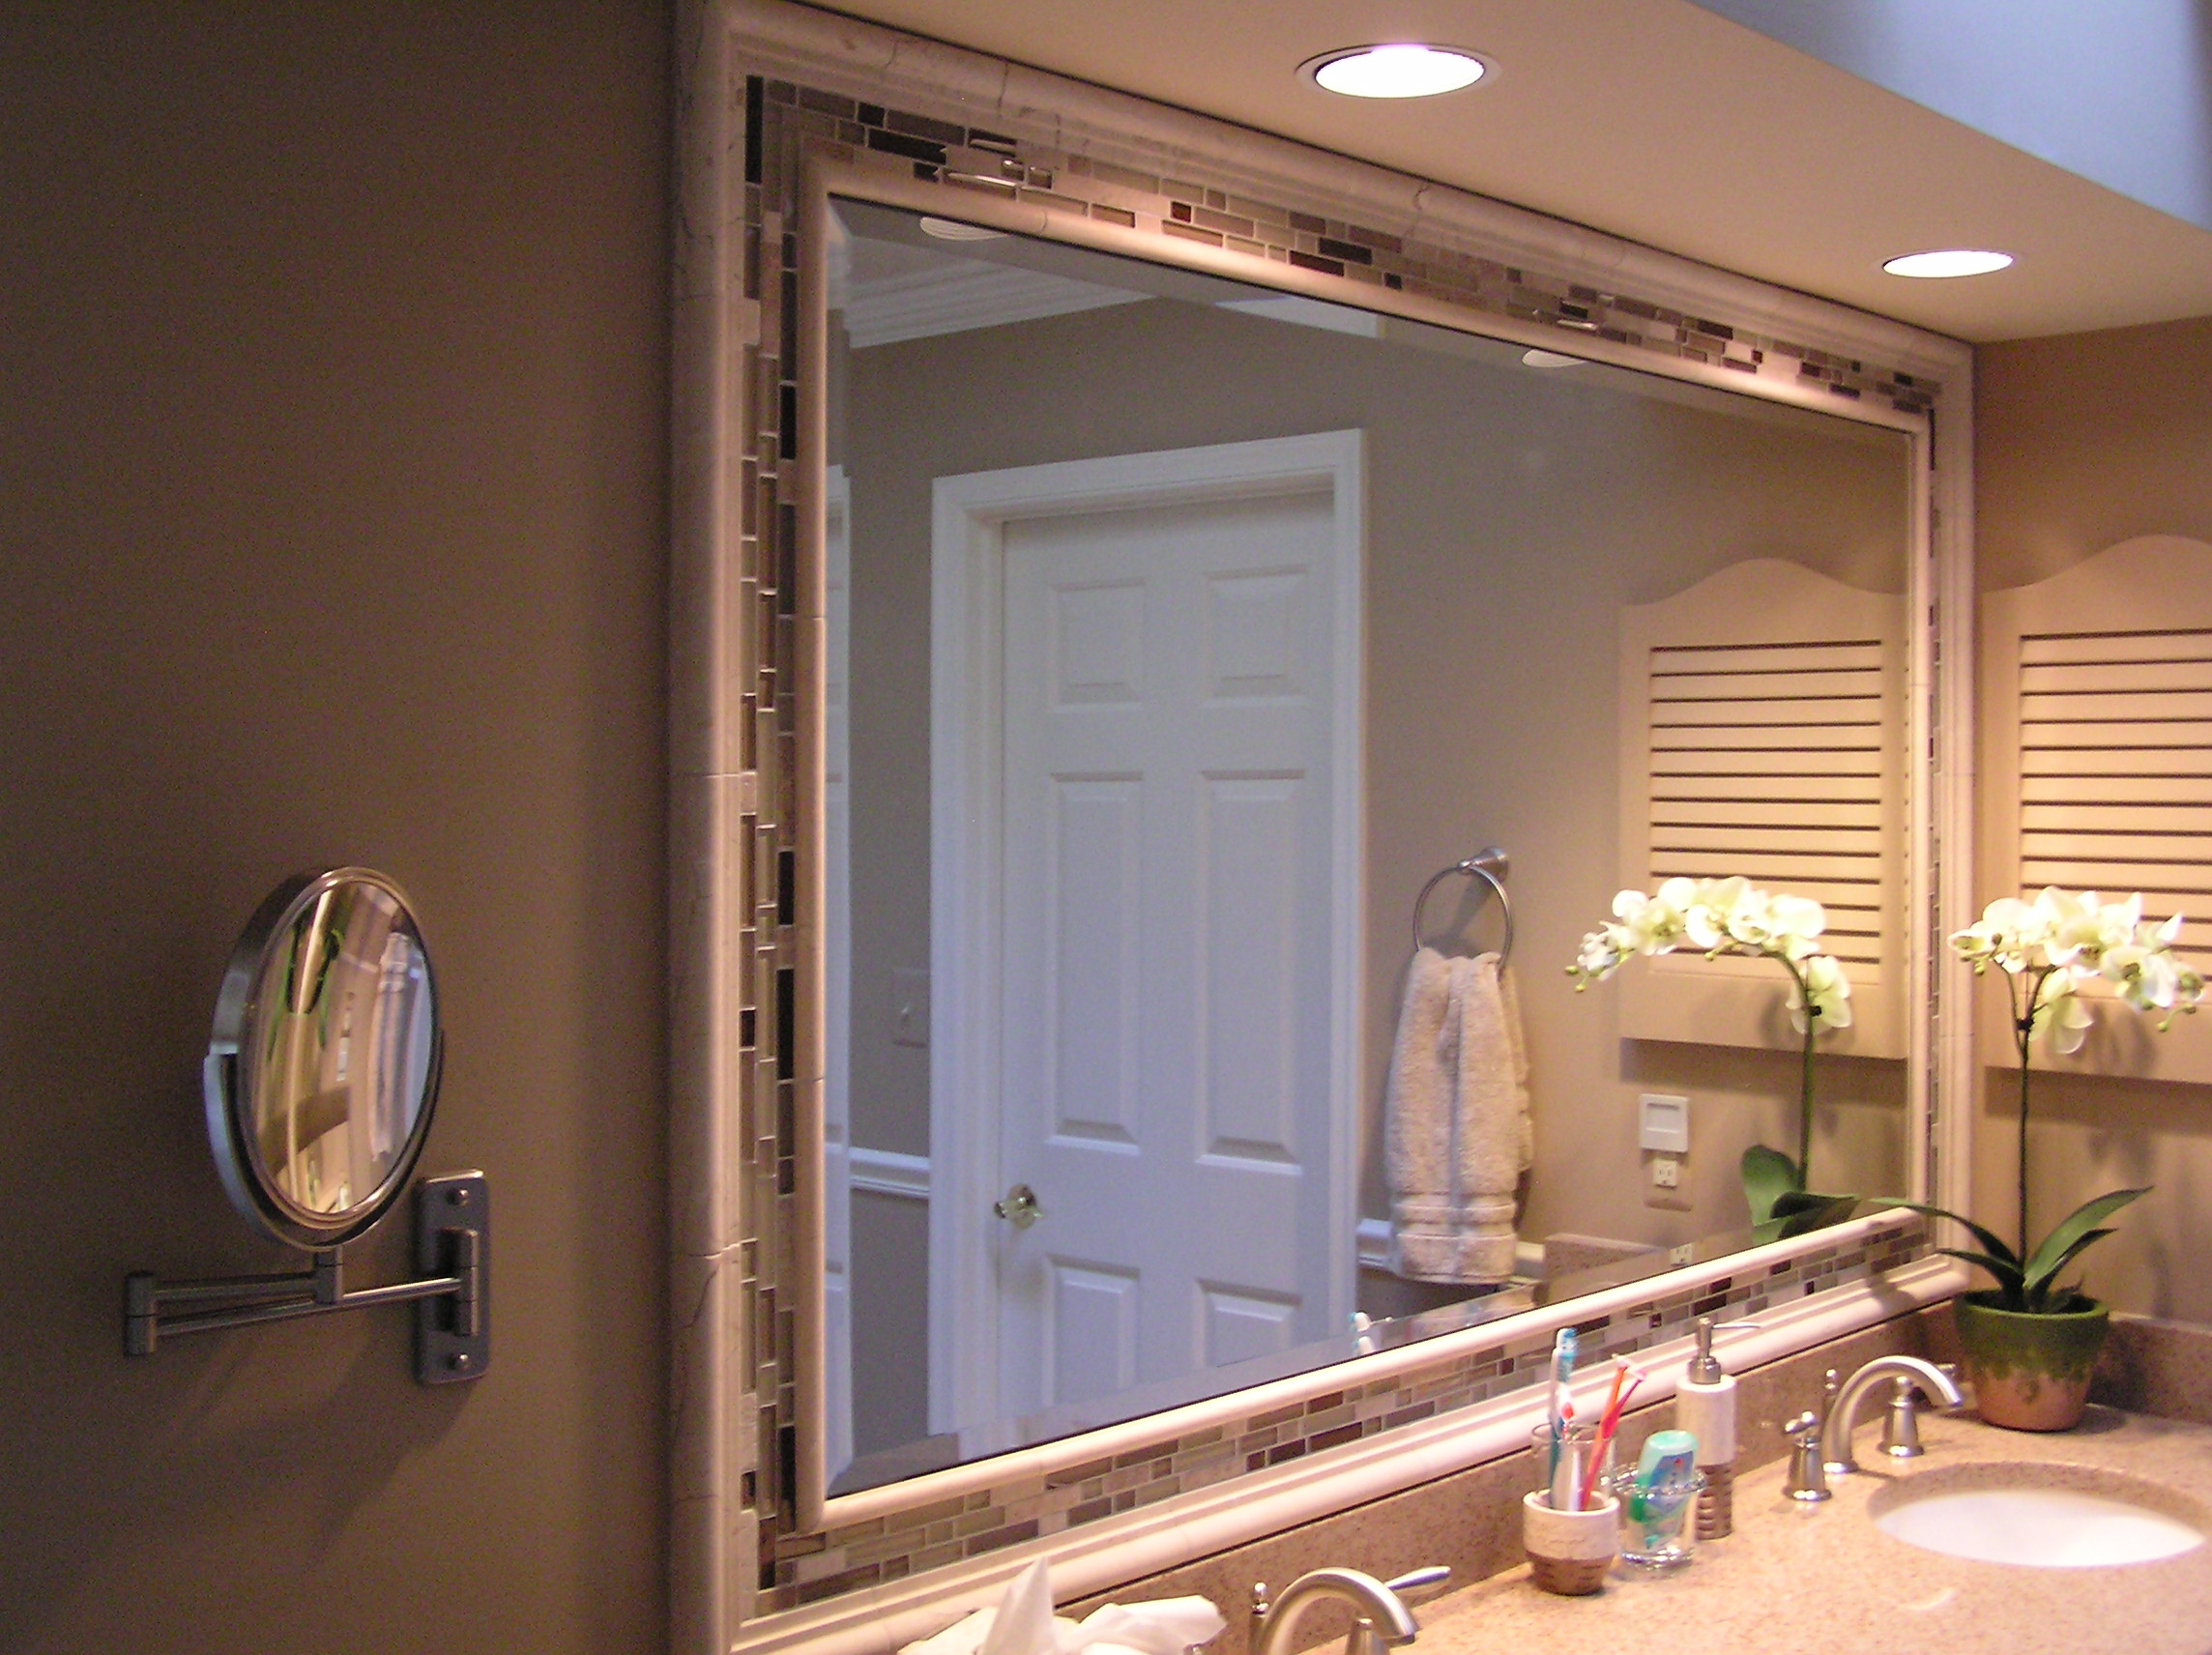 Small bathroom mirrors ideas - Bathroom Vanity Mirror Ideas